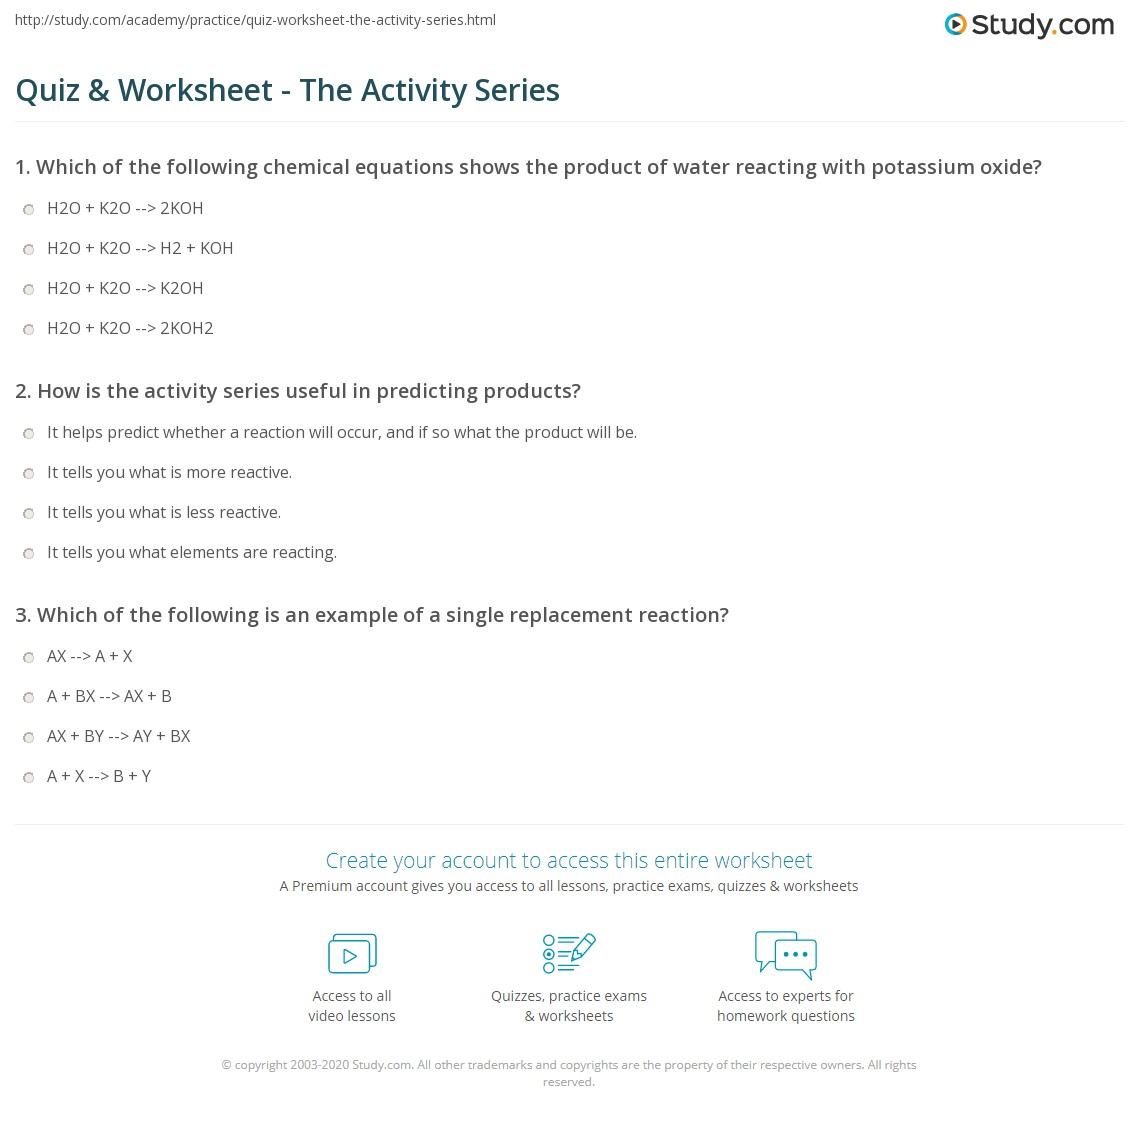 Aldiablosus  Picturesque Quiz Amp Worksheet  The Activity Series  Studycom With Extraordinary Print The Activity Series Predicting Products Of Single Displacement Reactions Worksheet With Appealing A Formula In This Worksheet Contains Also Irs Insolvency Worksheet Fillable In Addition Median Worksheet And Shape Matching Worksheets As Well As Cursive Writing Alphabet Worksheets Additionally Sentence Comprehension Worksheets From Studycom With Aldiablosus  Extraordinary Quiz Amp Worksheet  The Activity Series  Studycom With Appealing Print The Activity Series Predicting Products Of Single Displacement Reactions Worksheet And Picturesque A Formula In This Worksheet Contains Also Irs Insolvency Worksheet Fillable In Addition Median Worksheet From Studycom